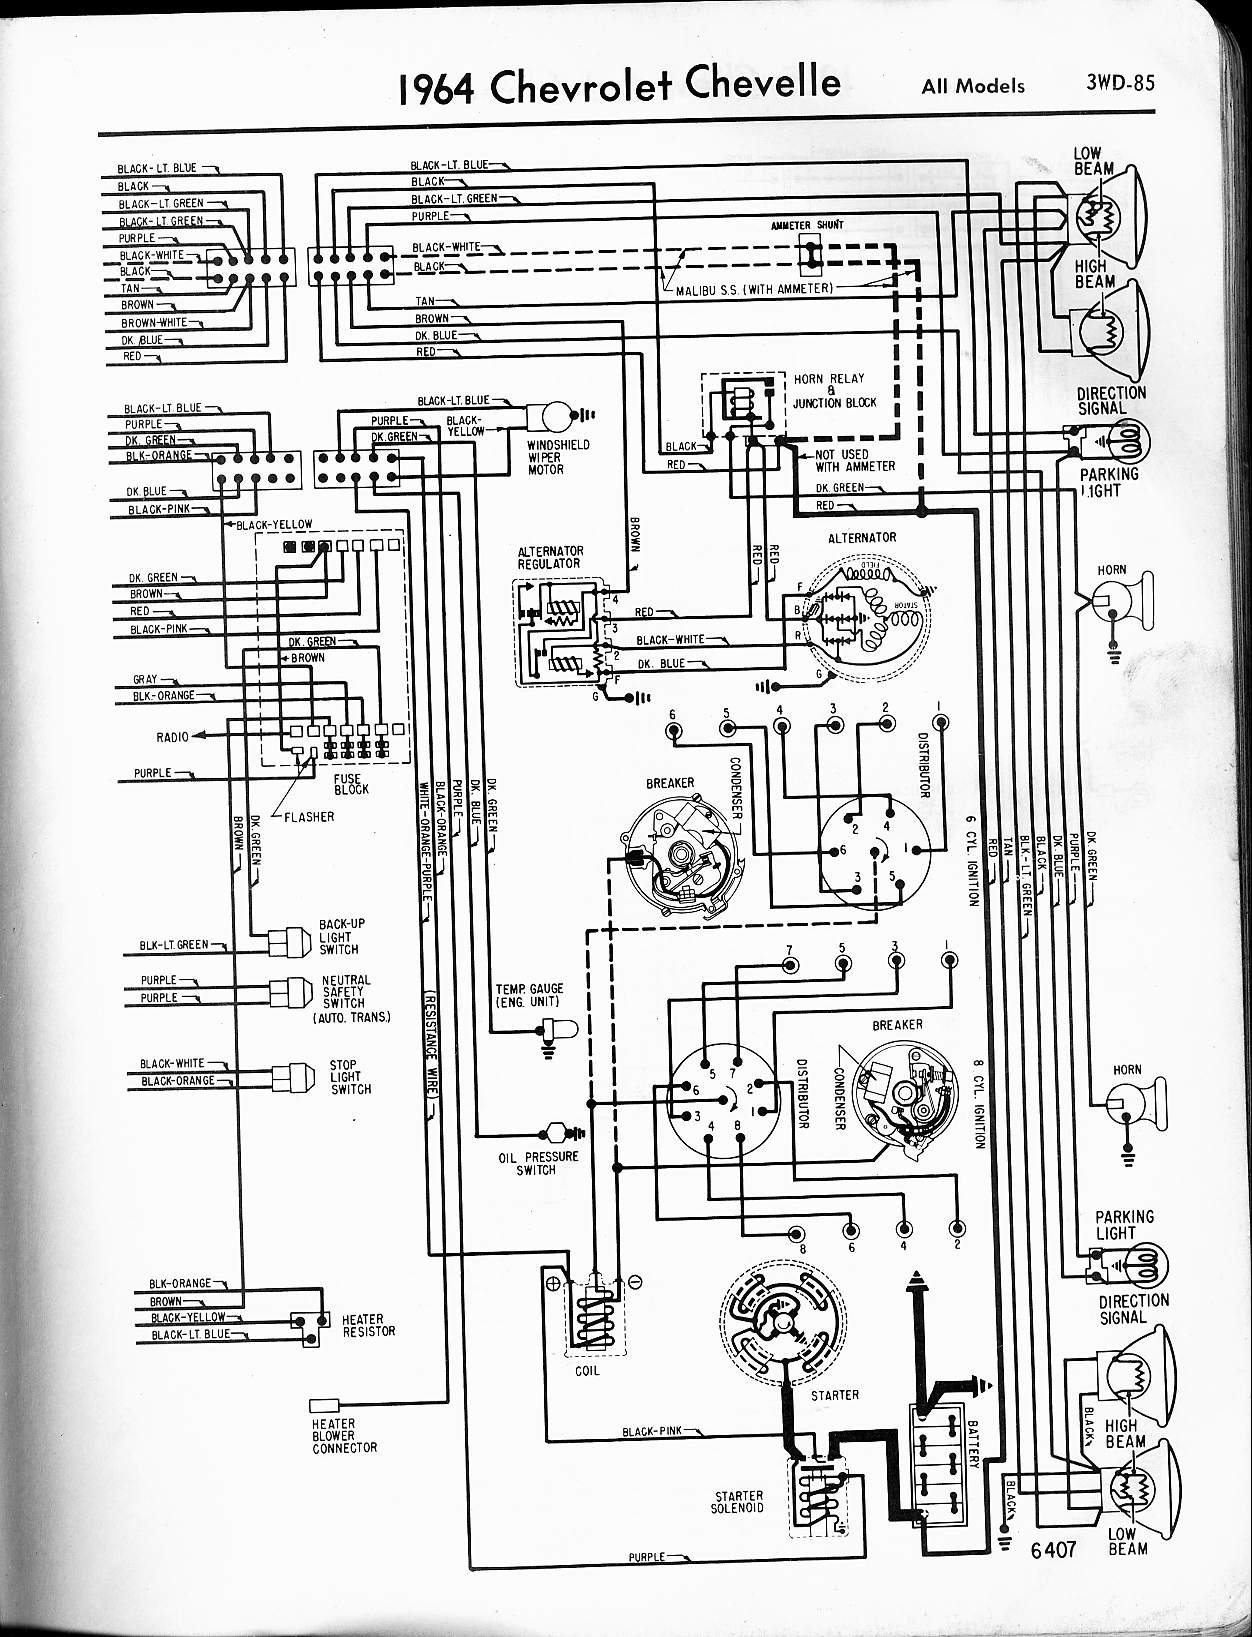 MWireChev64_3WD 085 chevy diagrams 1964 thunderbird wiring diagram at bayanpartner.co